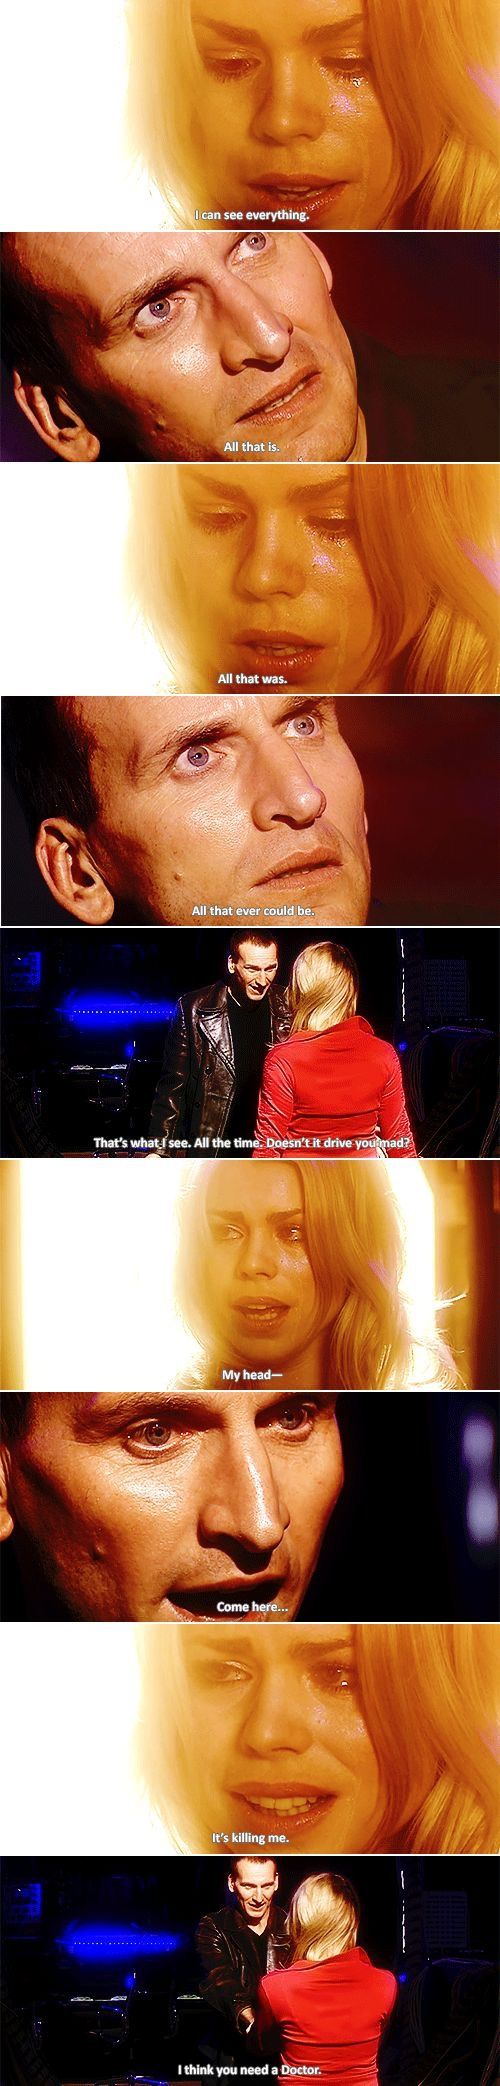 I think I need a doctor for my BROKEN HEART thank you BBC